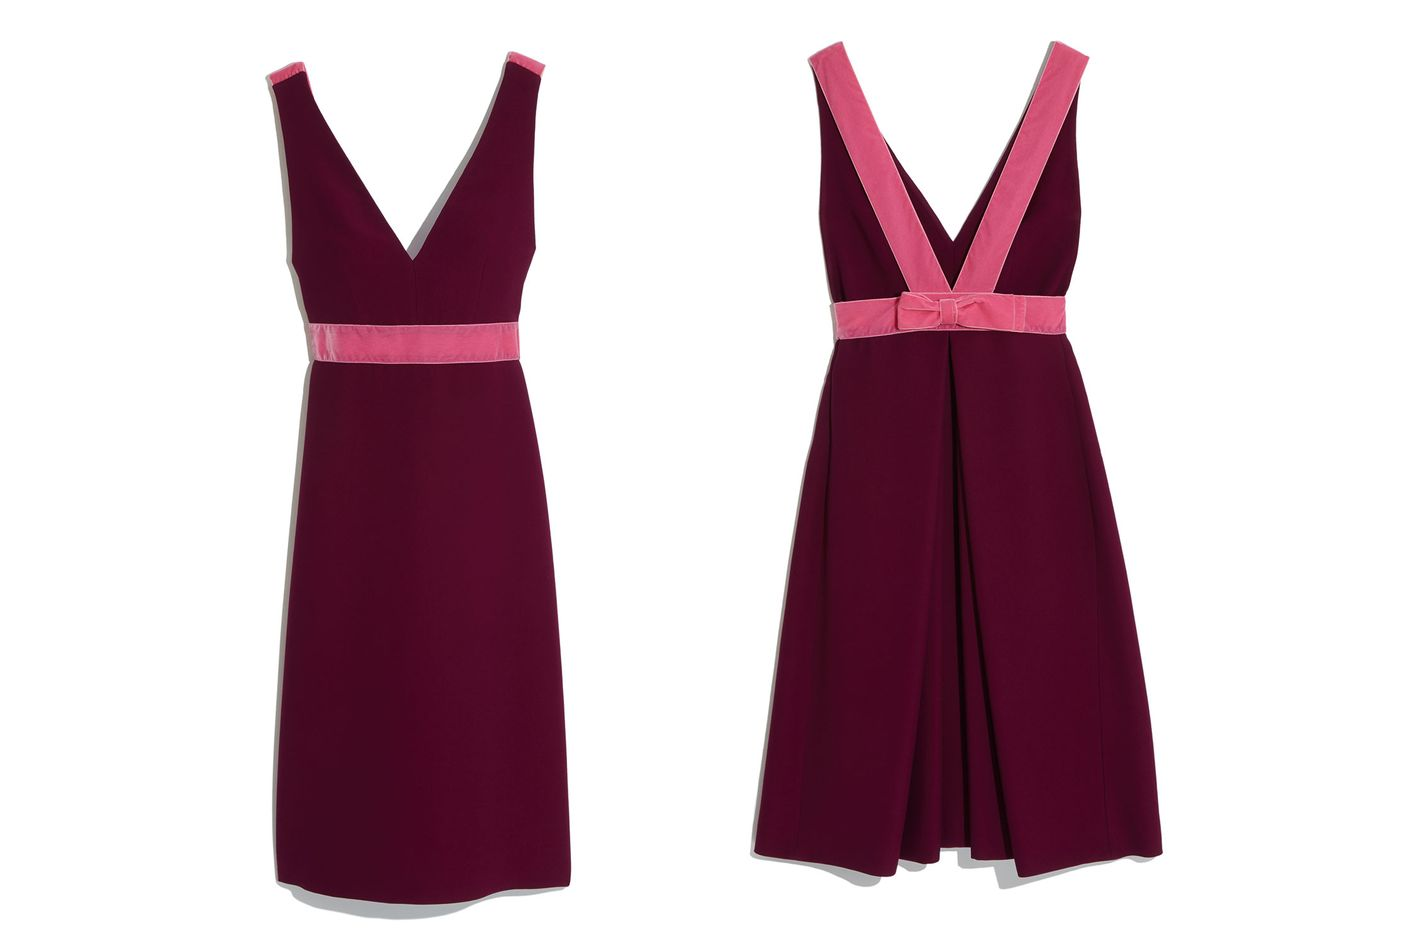 Prada Velvet Bow-Back V-Neck Dress